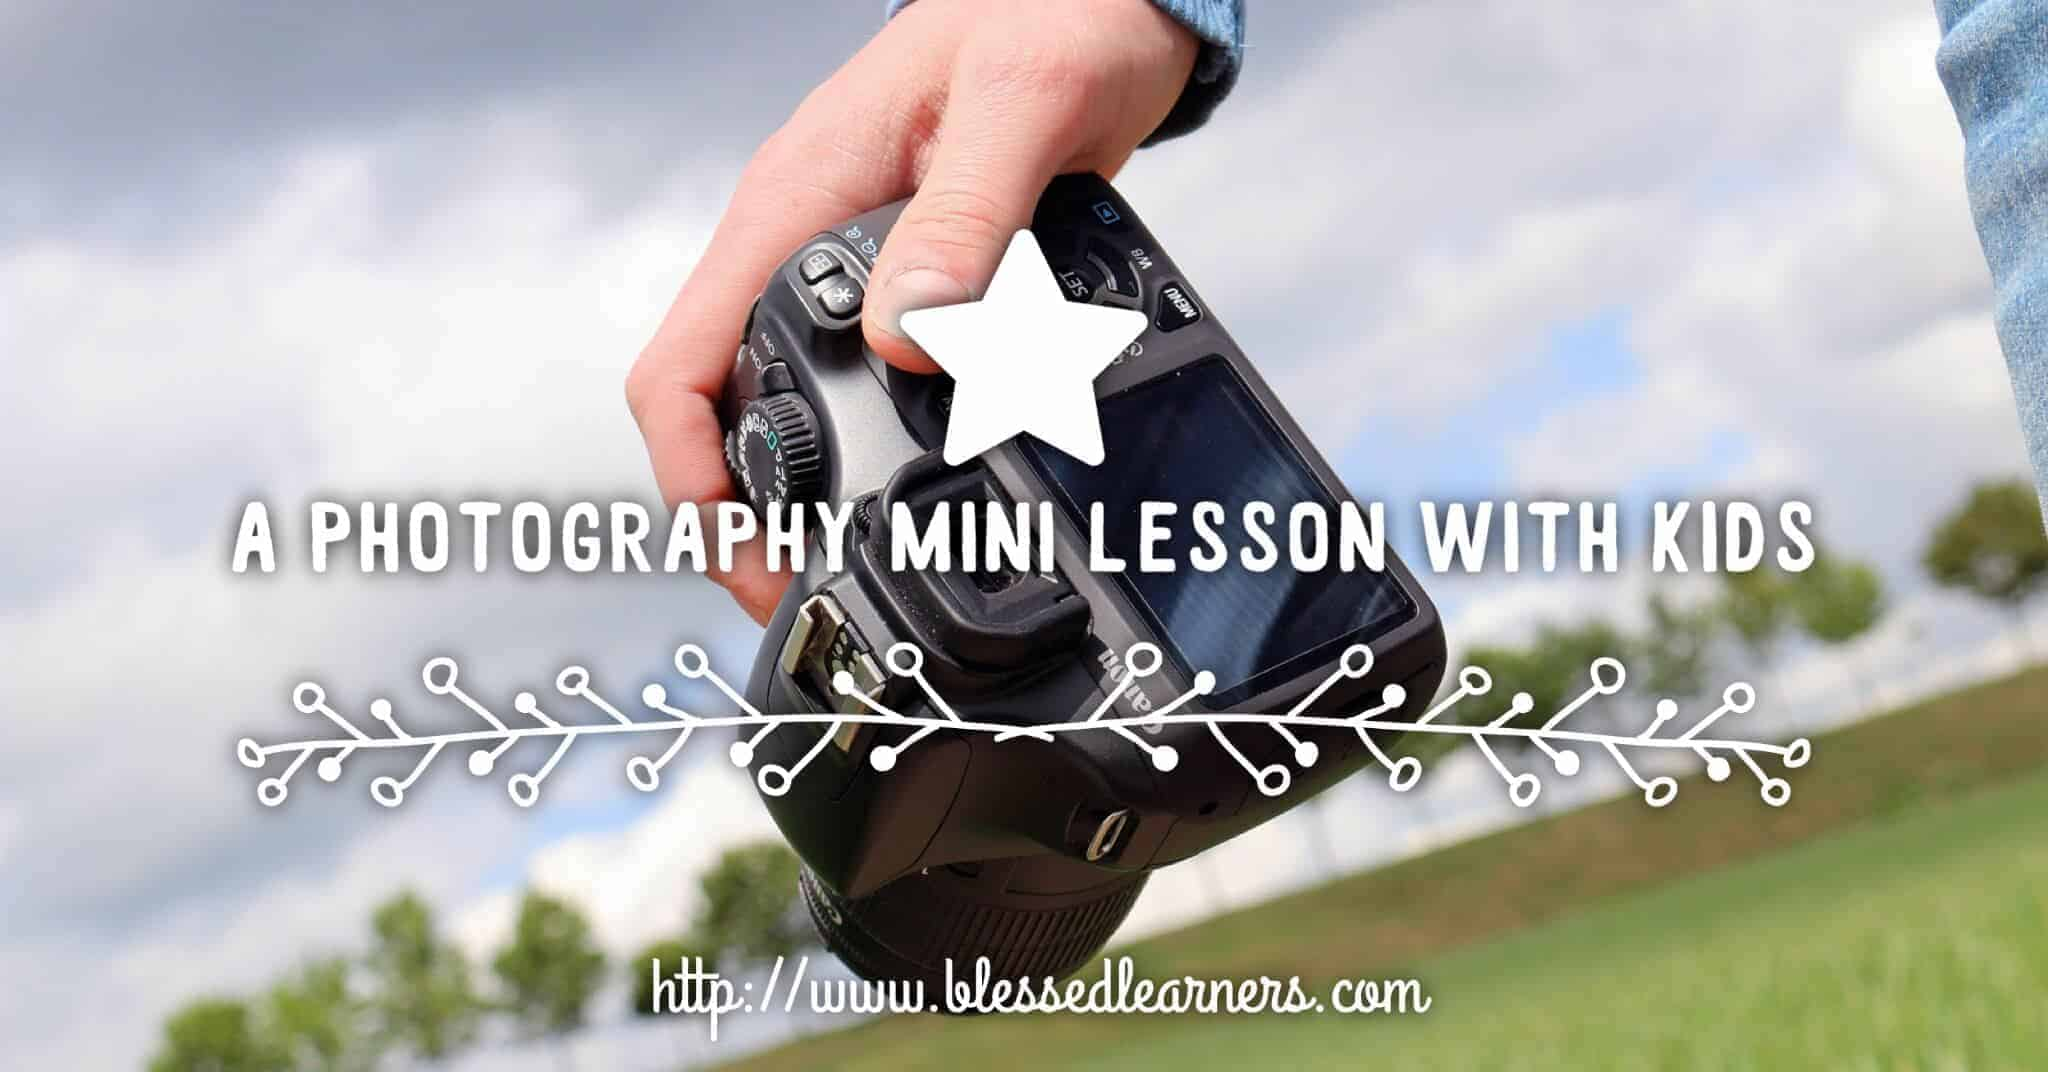 A Photography Mini Lesson for Kids